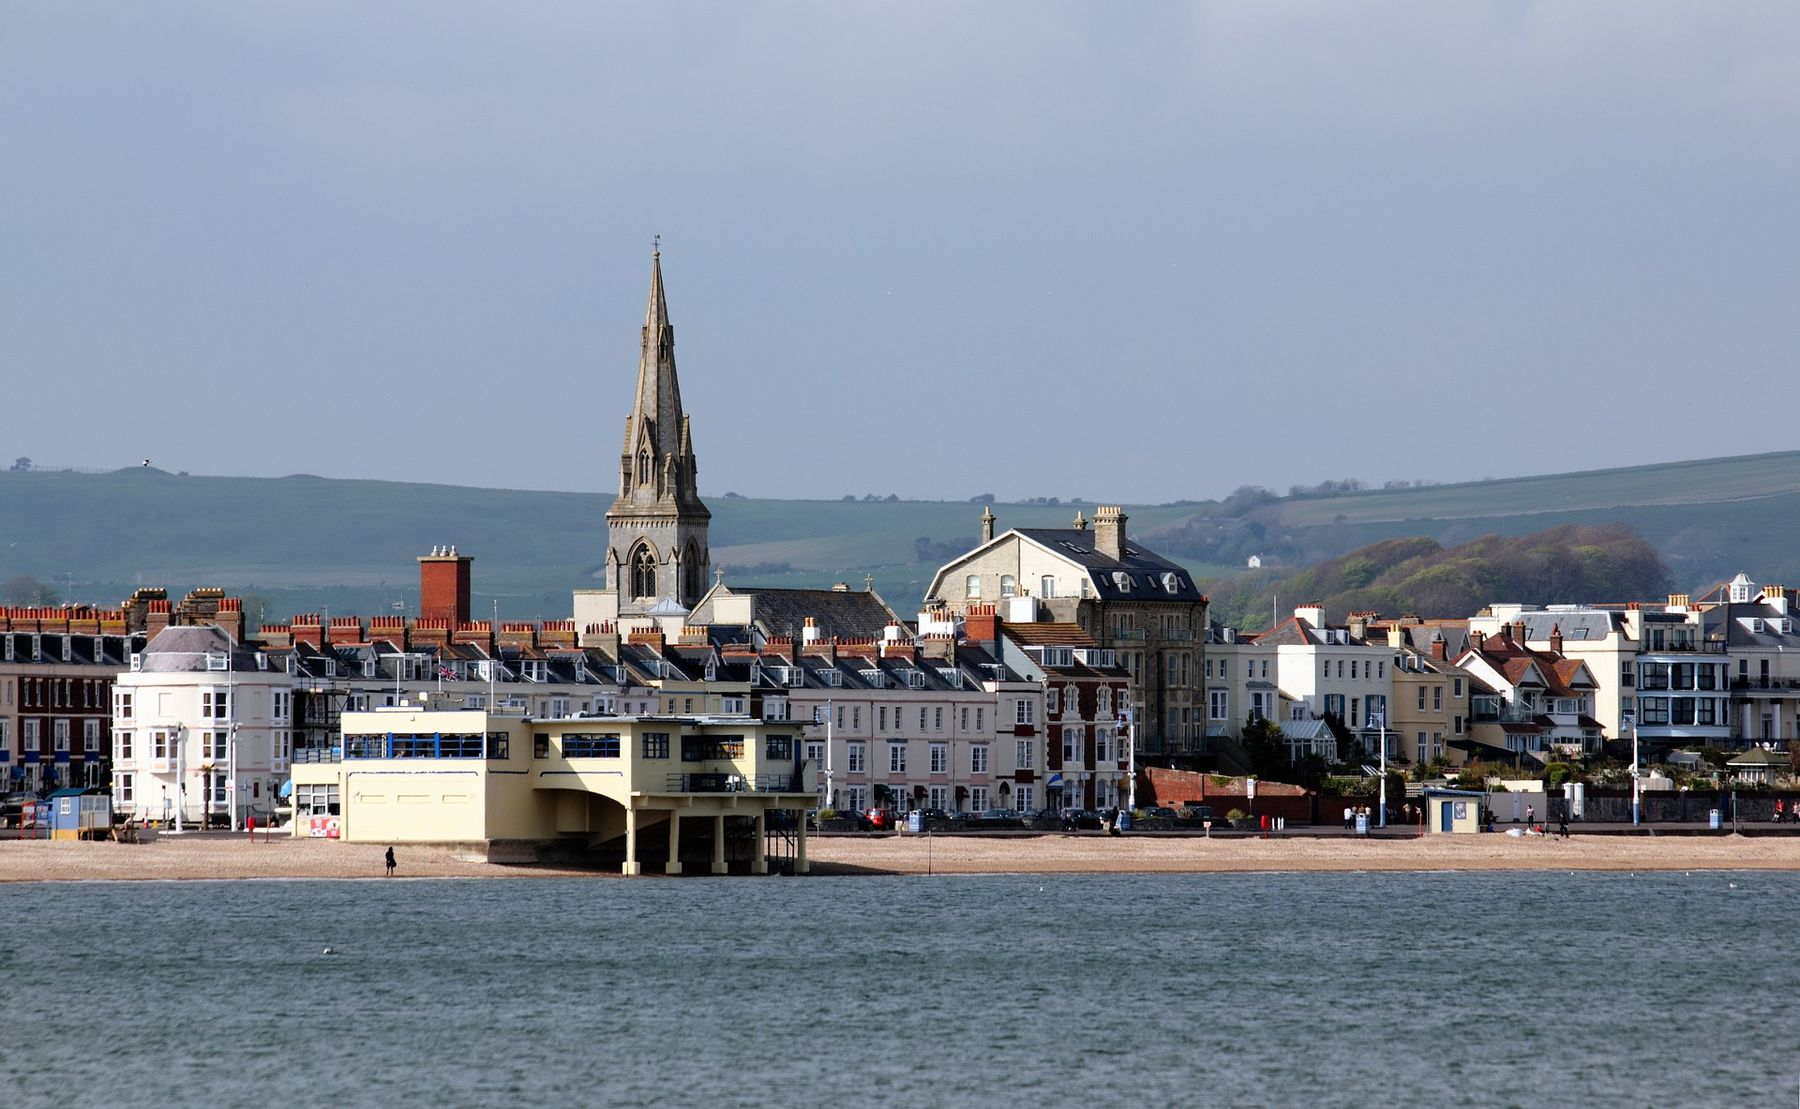 Moonfleet Manor, the best beach hotel for families, is on the outskirts of Weymouth